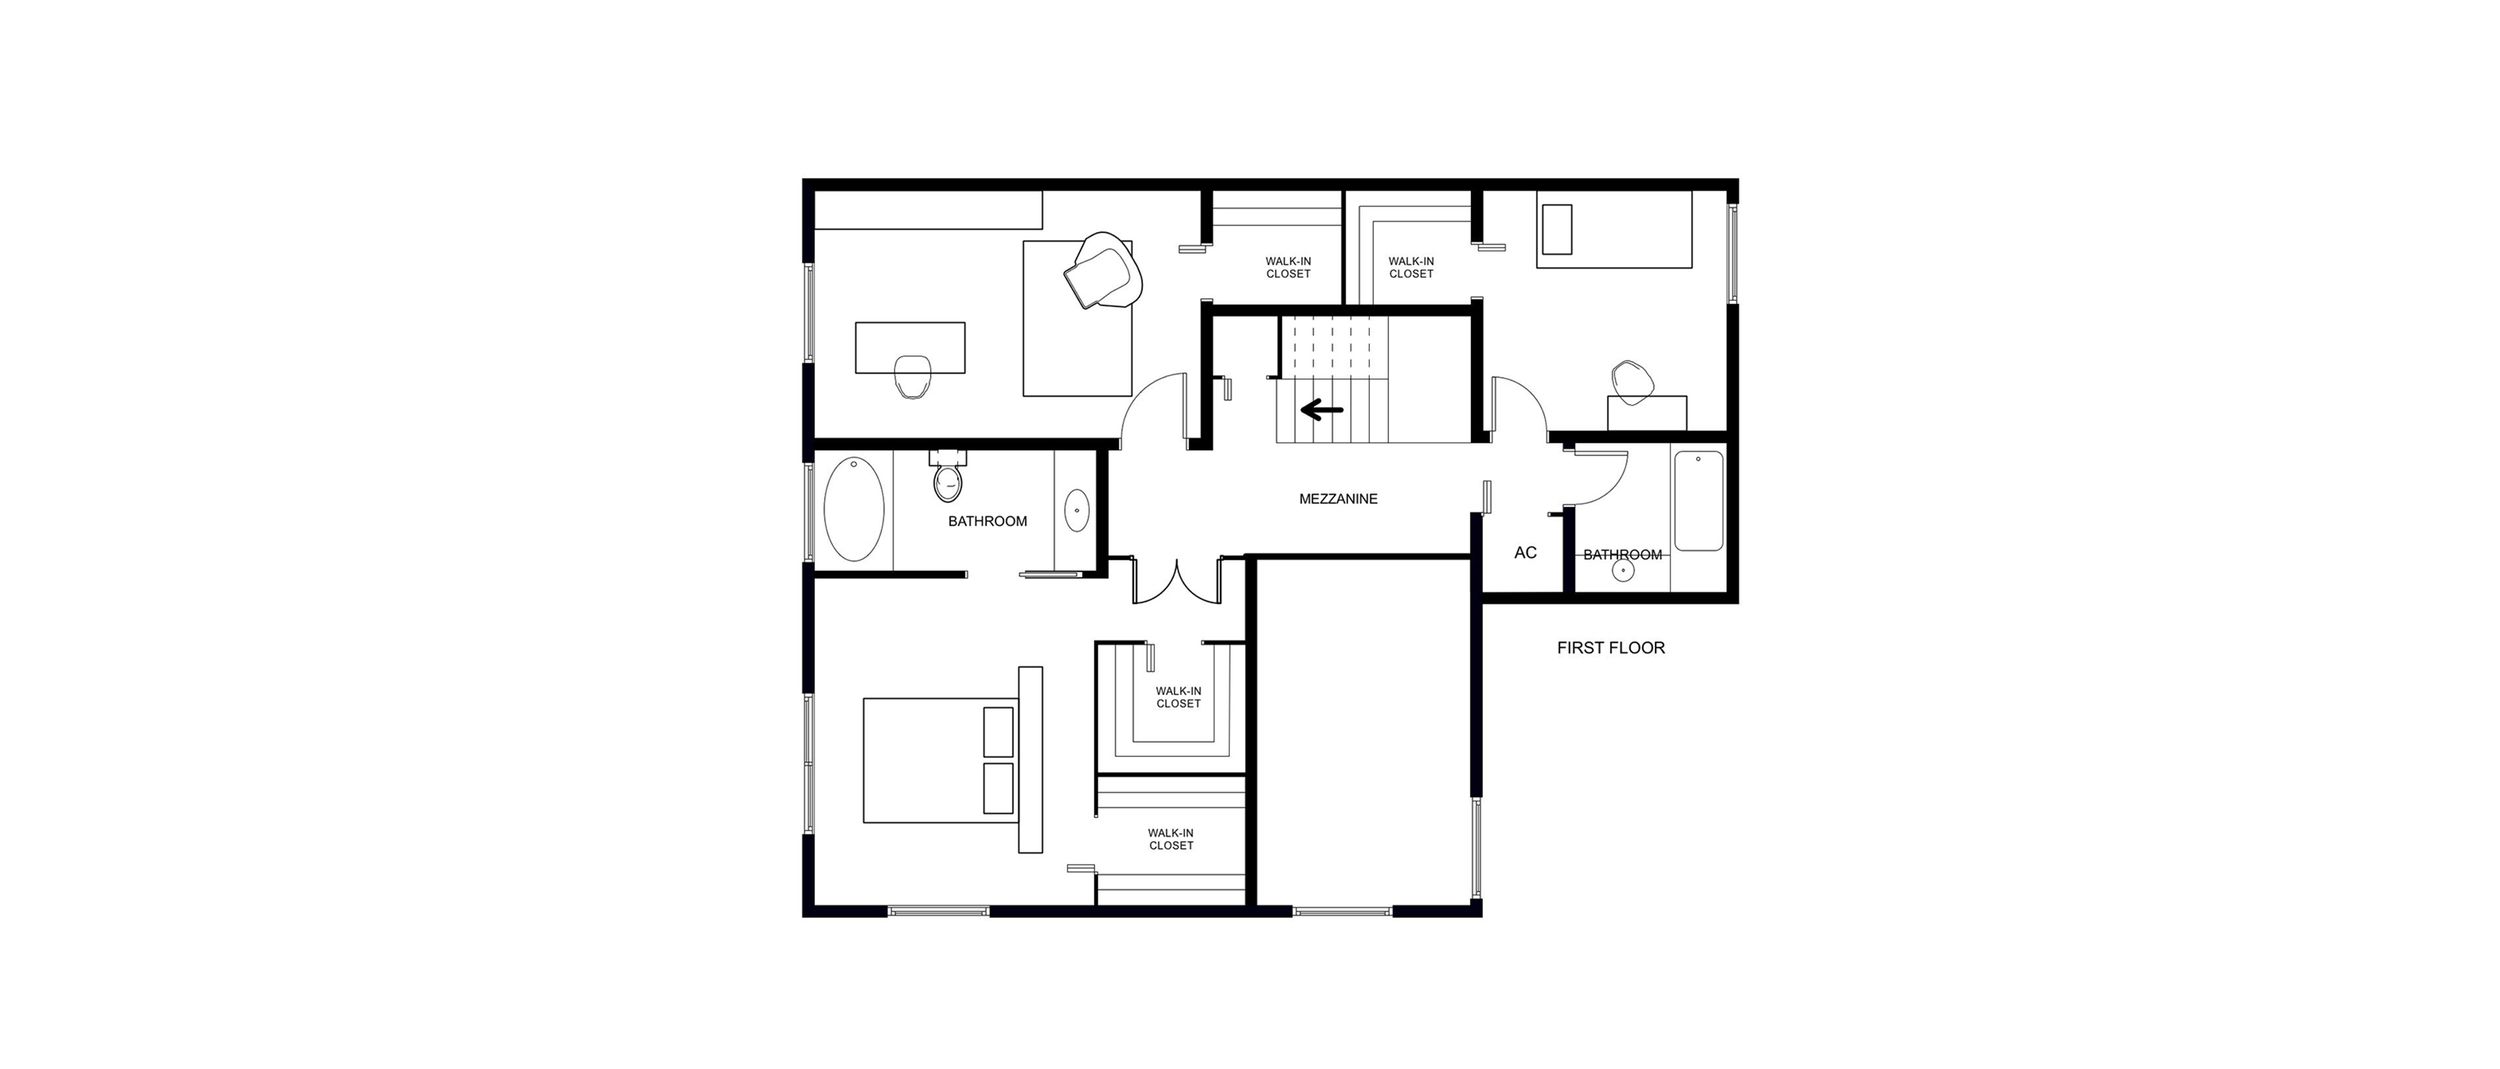 MiamiProject-SecondFloor-After-3000x1500.jpg